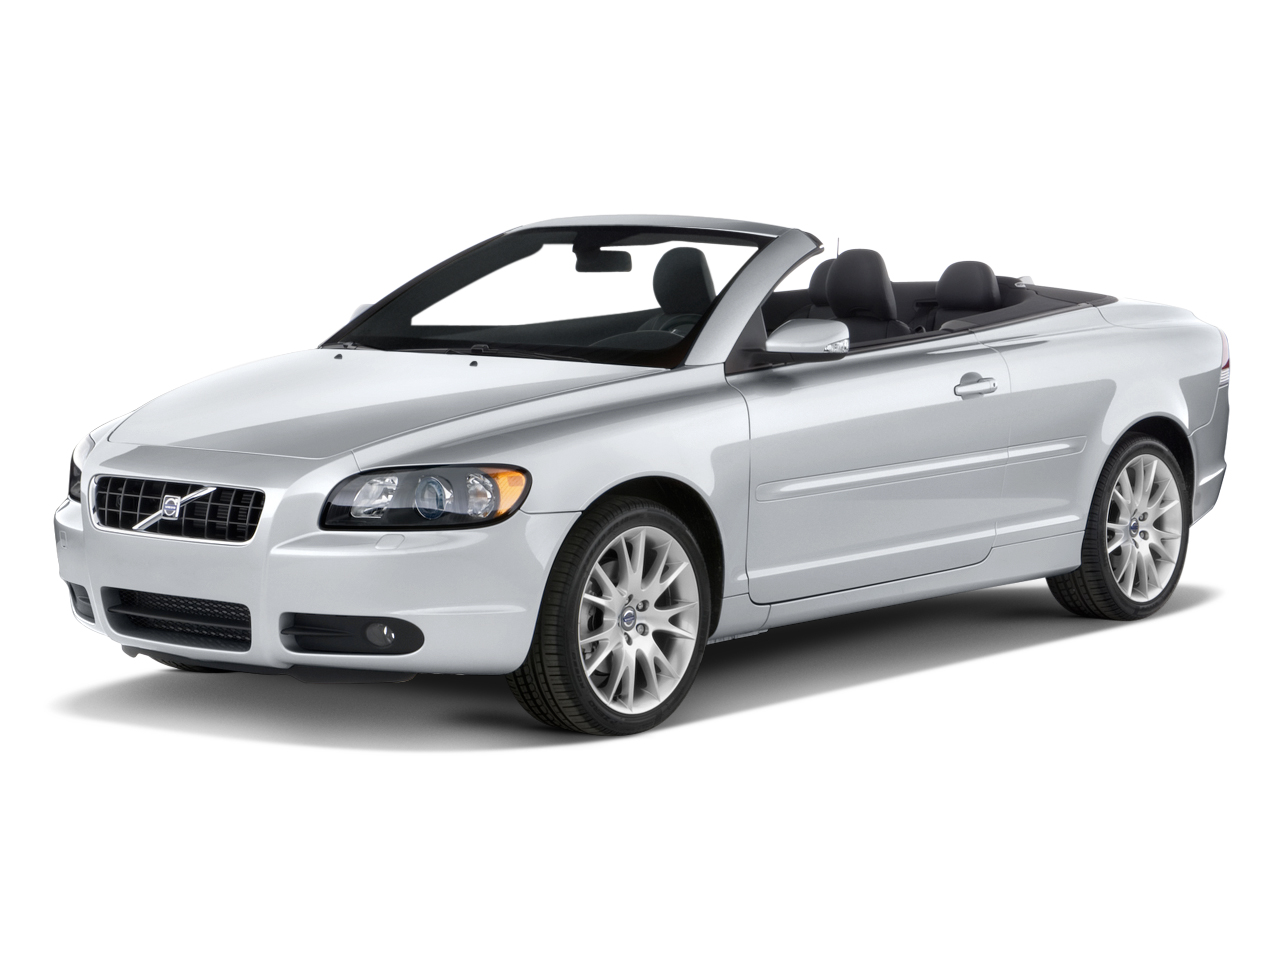 2010 Volvo C70 Review, Ratings, Specs, Prices, and Photos ...